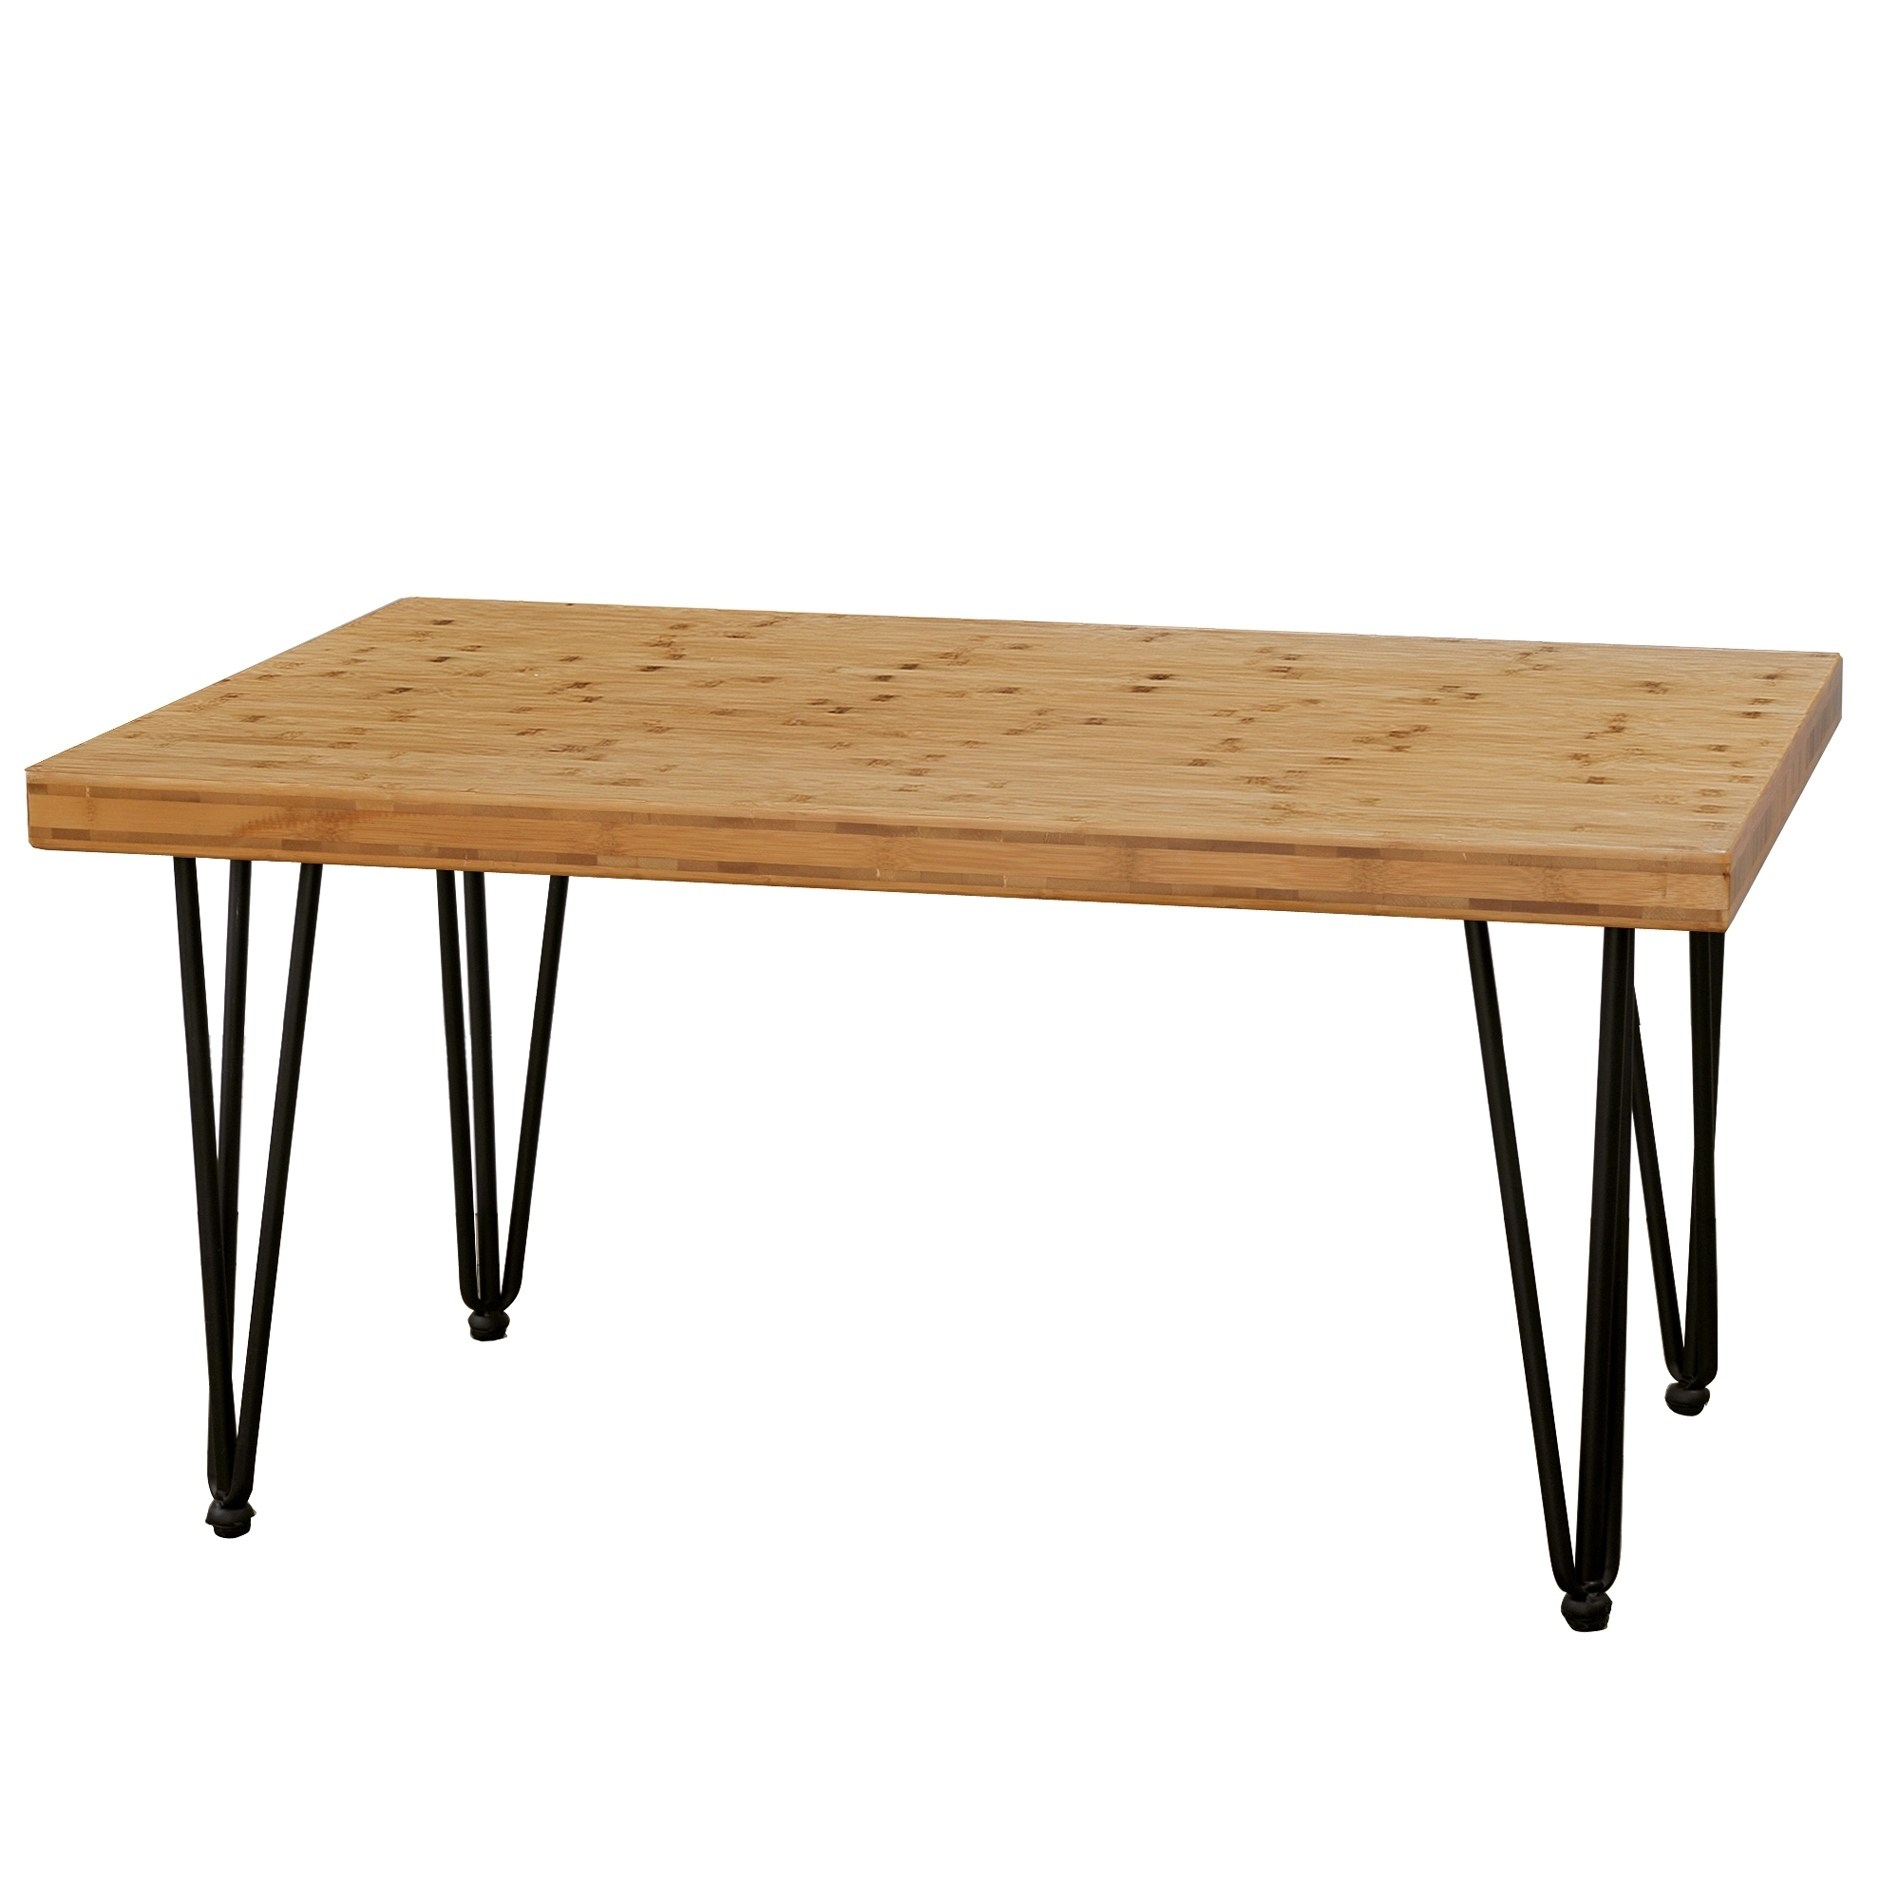 boon living bamboo wood and metal coffee table with hairpin natural legs round accent screw free shipping today patio side clearance dining room welcome furniture all modern lamps